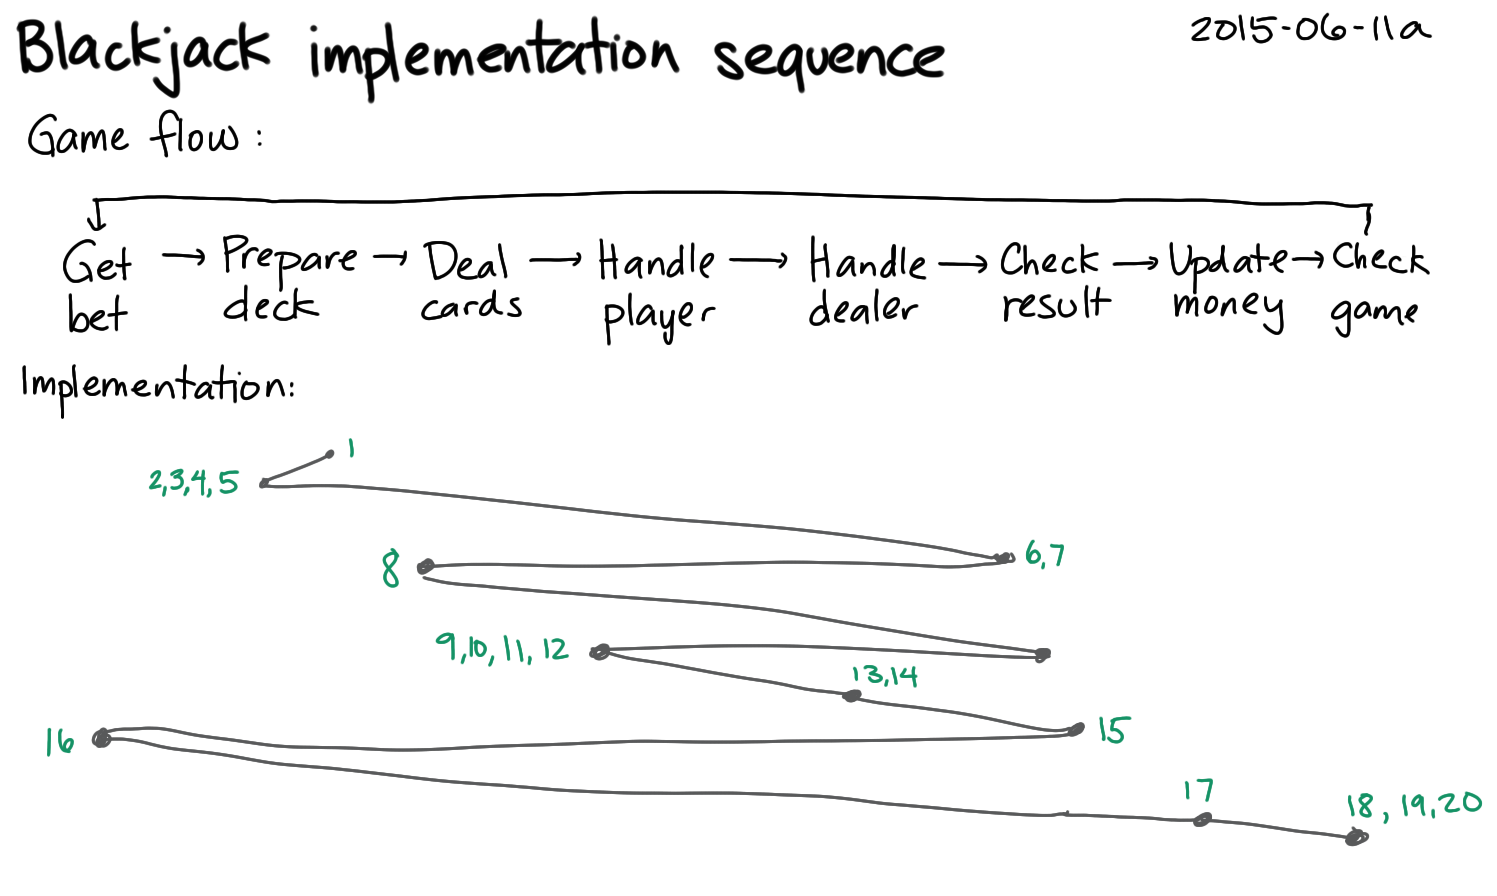 2015-06-11a Blackjack implementation sequence -- index card #sequencing #problem-solving.png